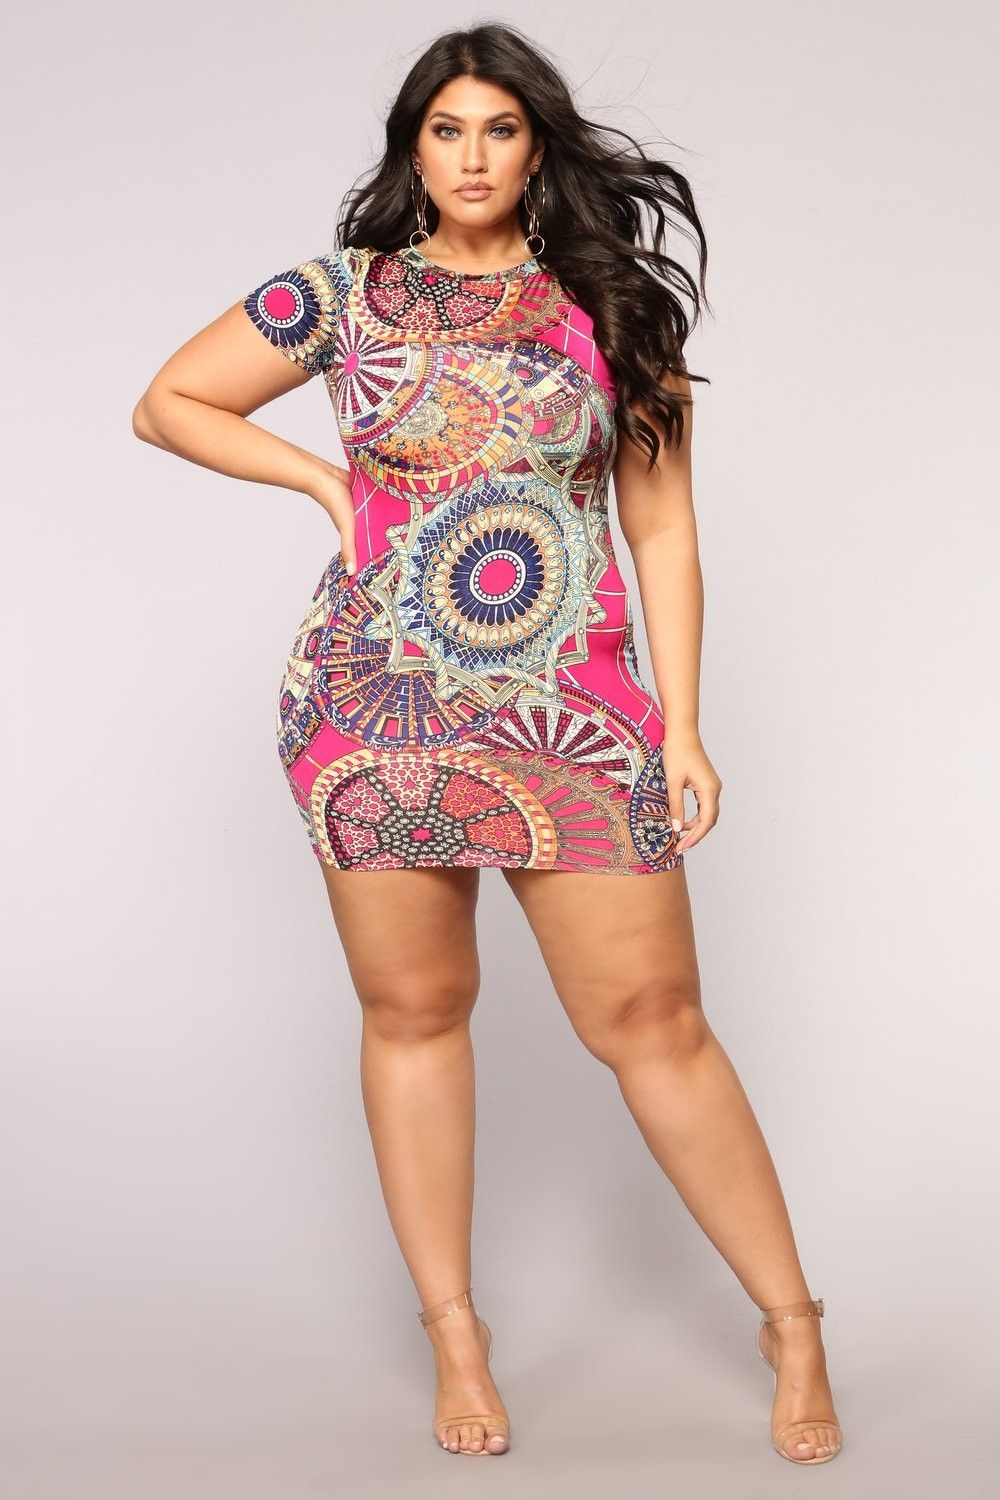 8029a4df5 Plus Size Marcelia Dress - Magenta  27.99  fashion  ootd  outfit  oufits